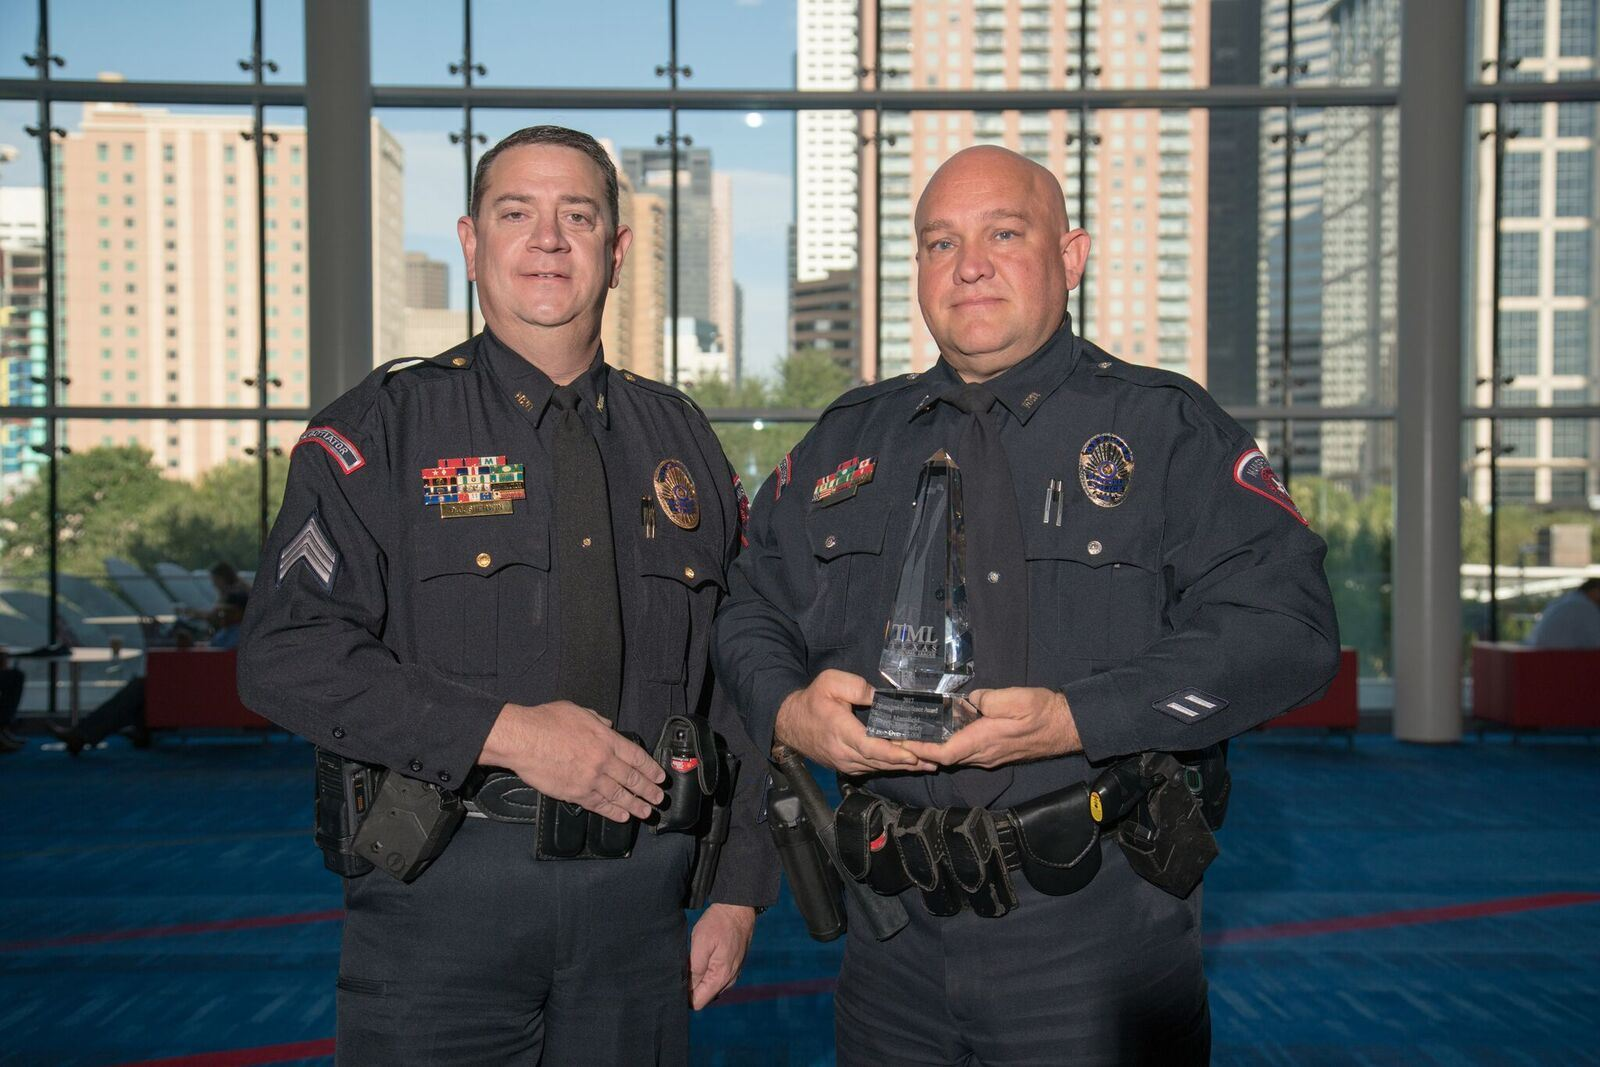 2 Mansfield officers together with one holding award at event